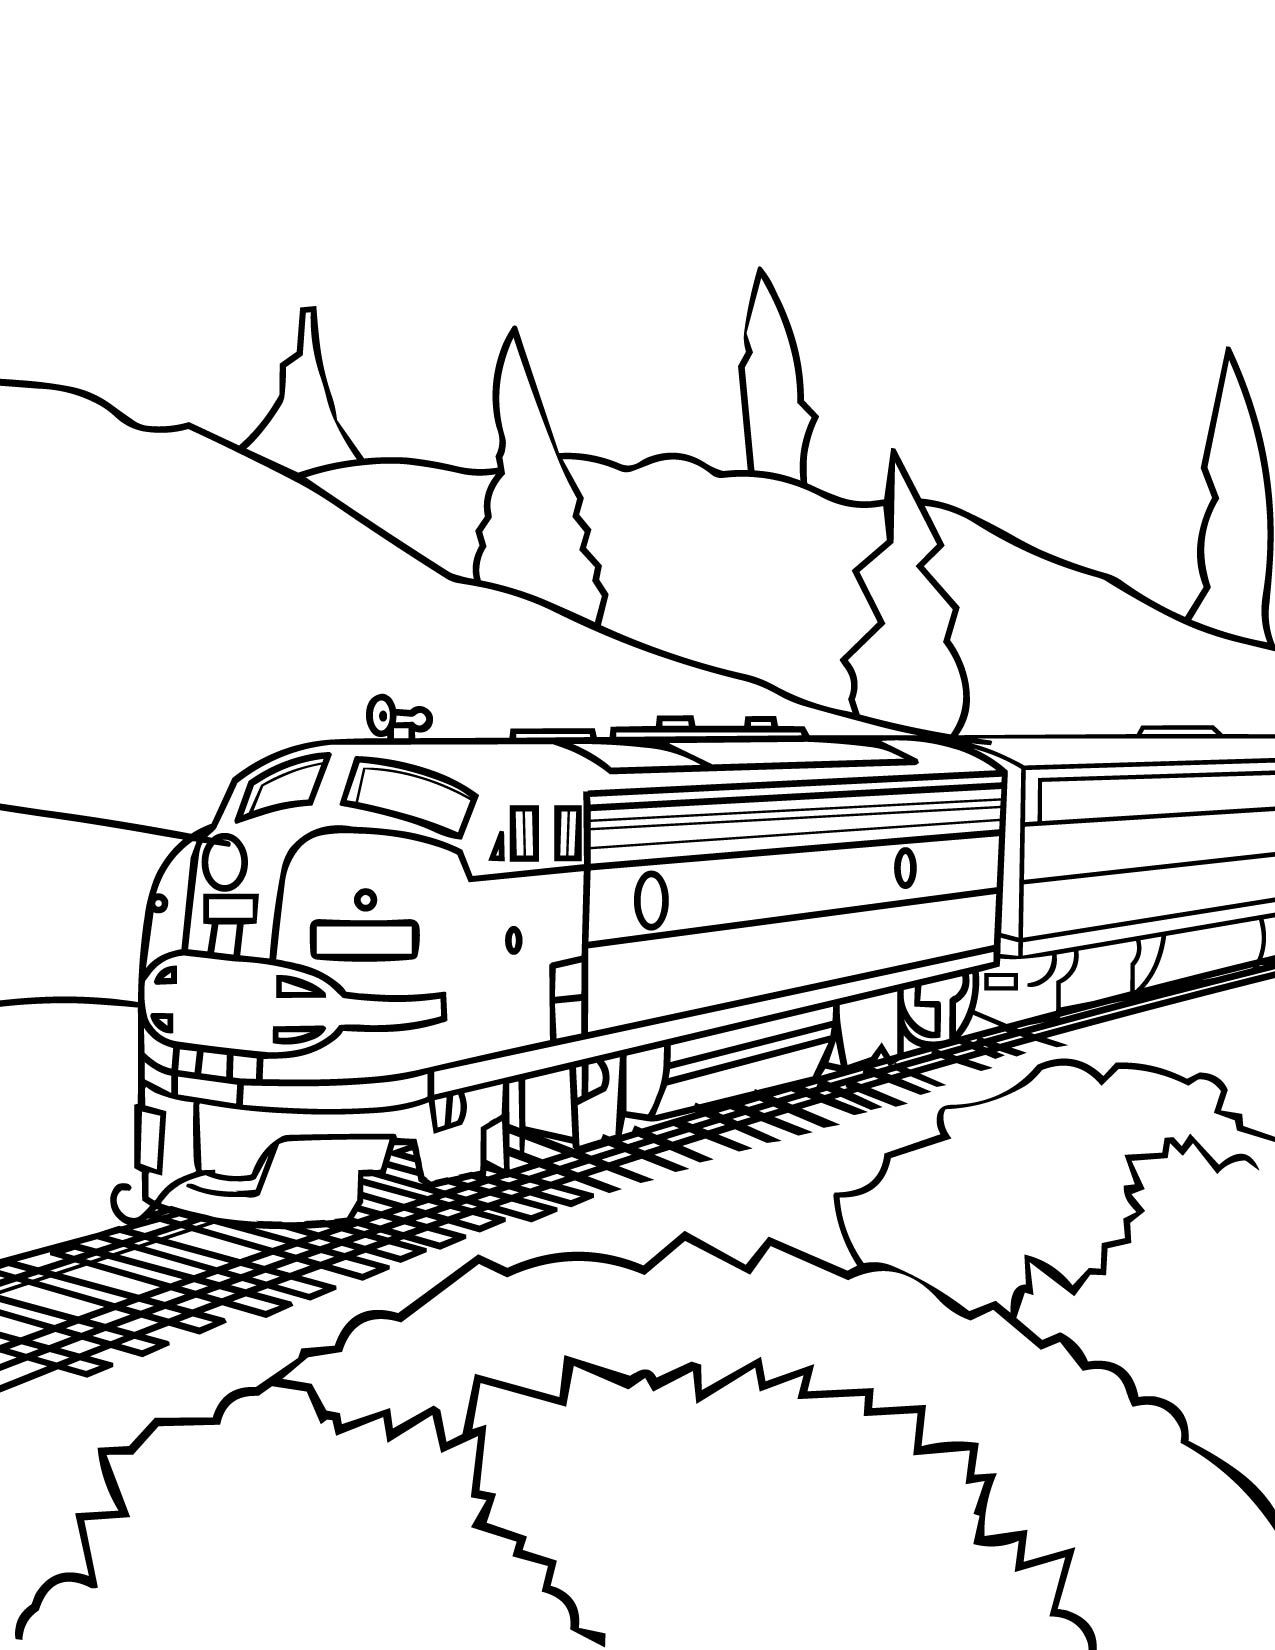 Alphabet Train Coloring Book Pages To Print Emily The Train Coloring Pages Jpg 1275 1650 Train Coloring Pages Coloring Books Printable Coloring Book